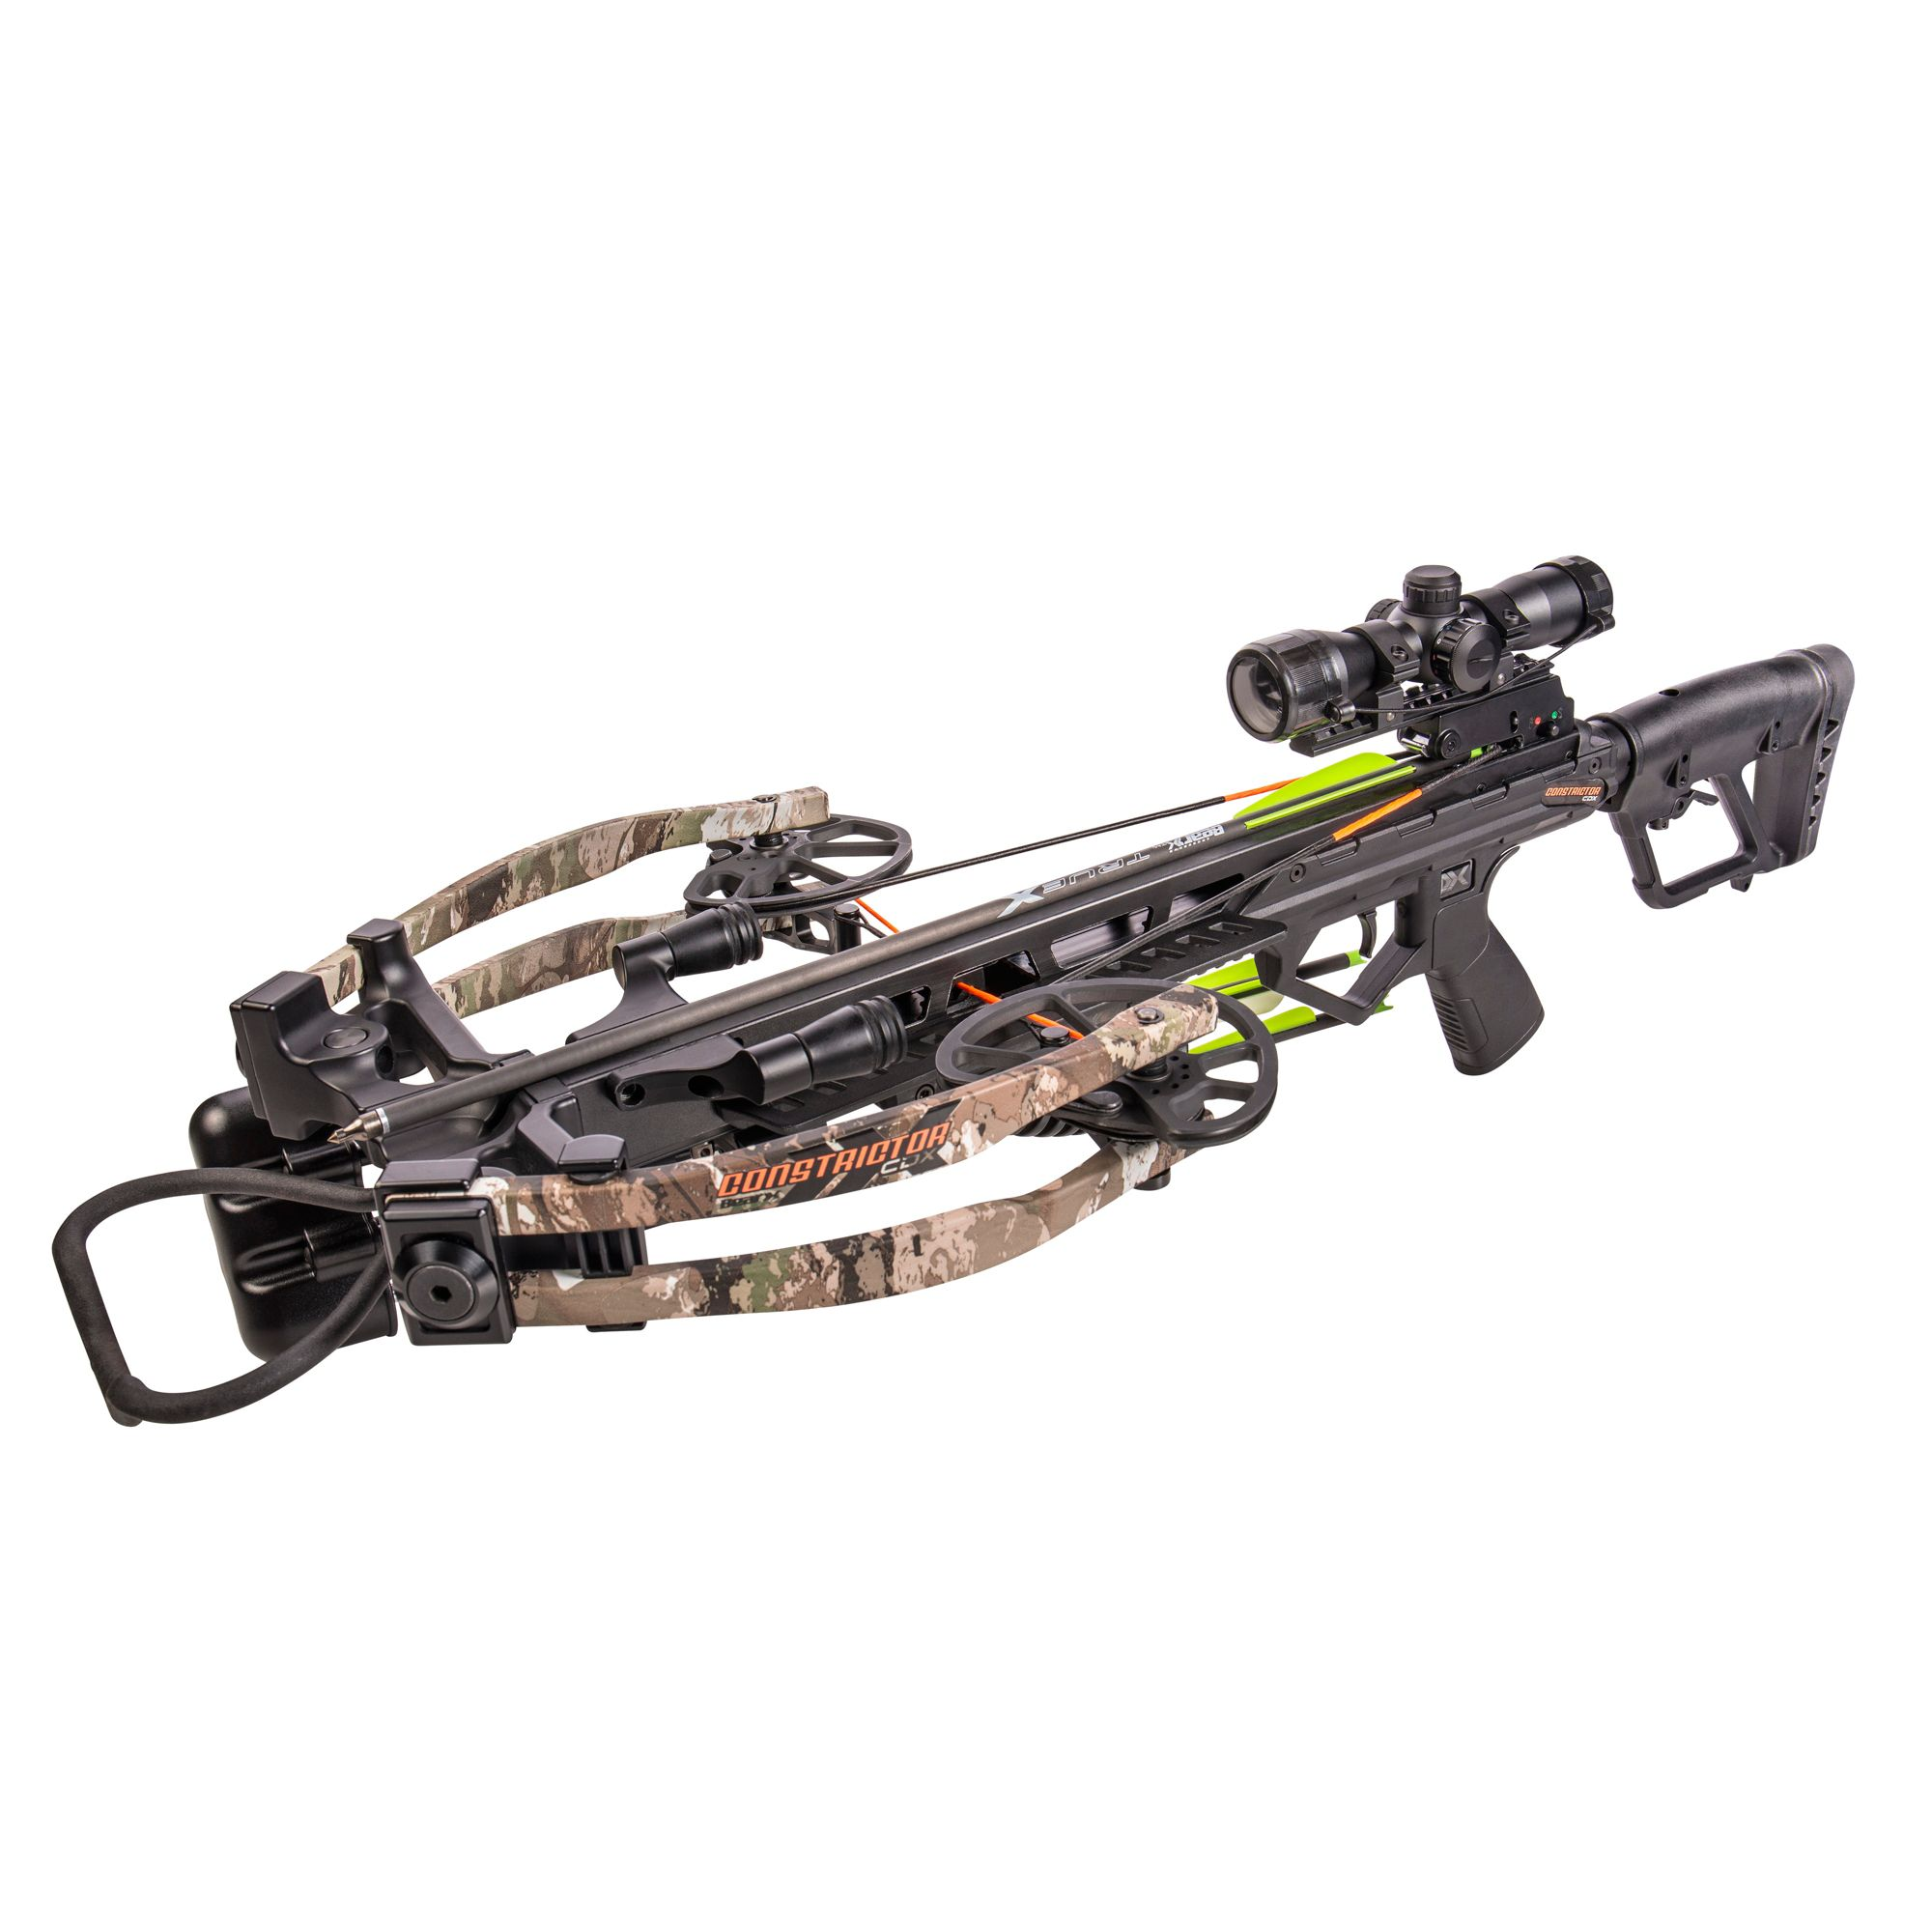 Bear X Constrictor CDX Crossbow Package - 410 FPS, fire thumbnail